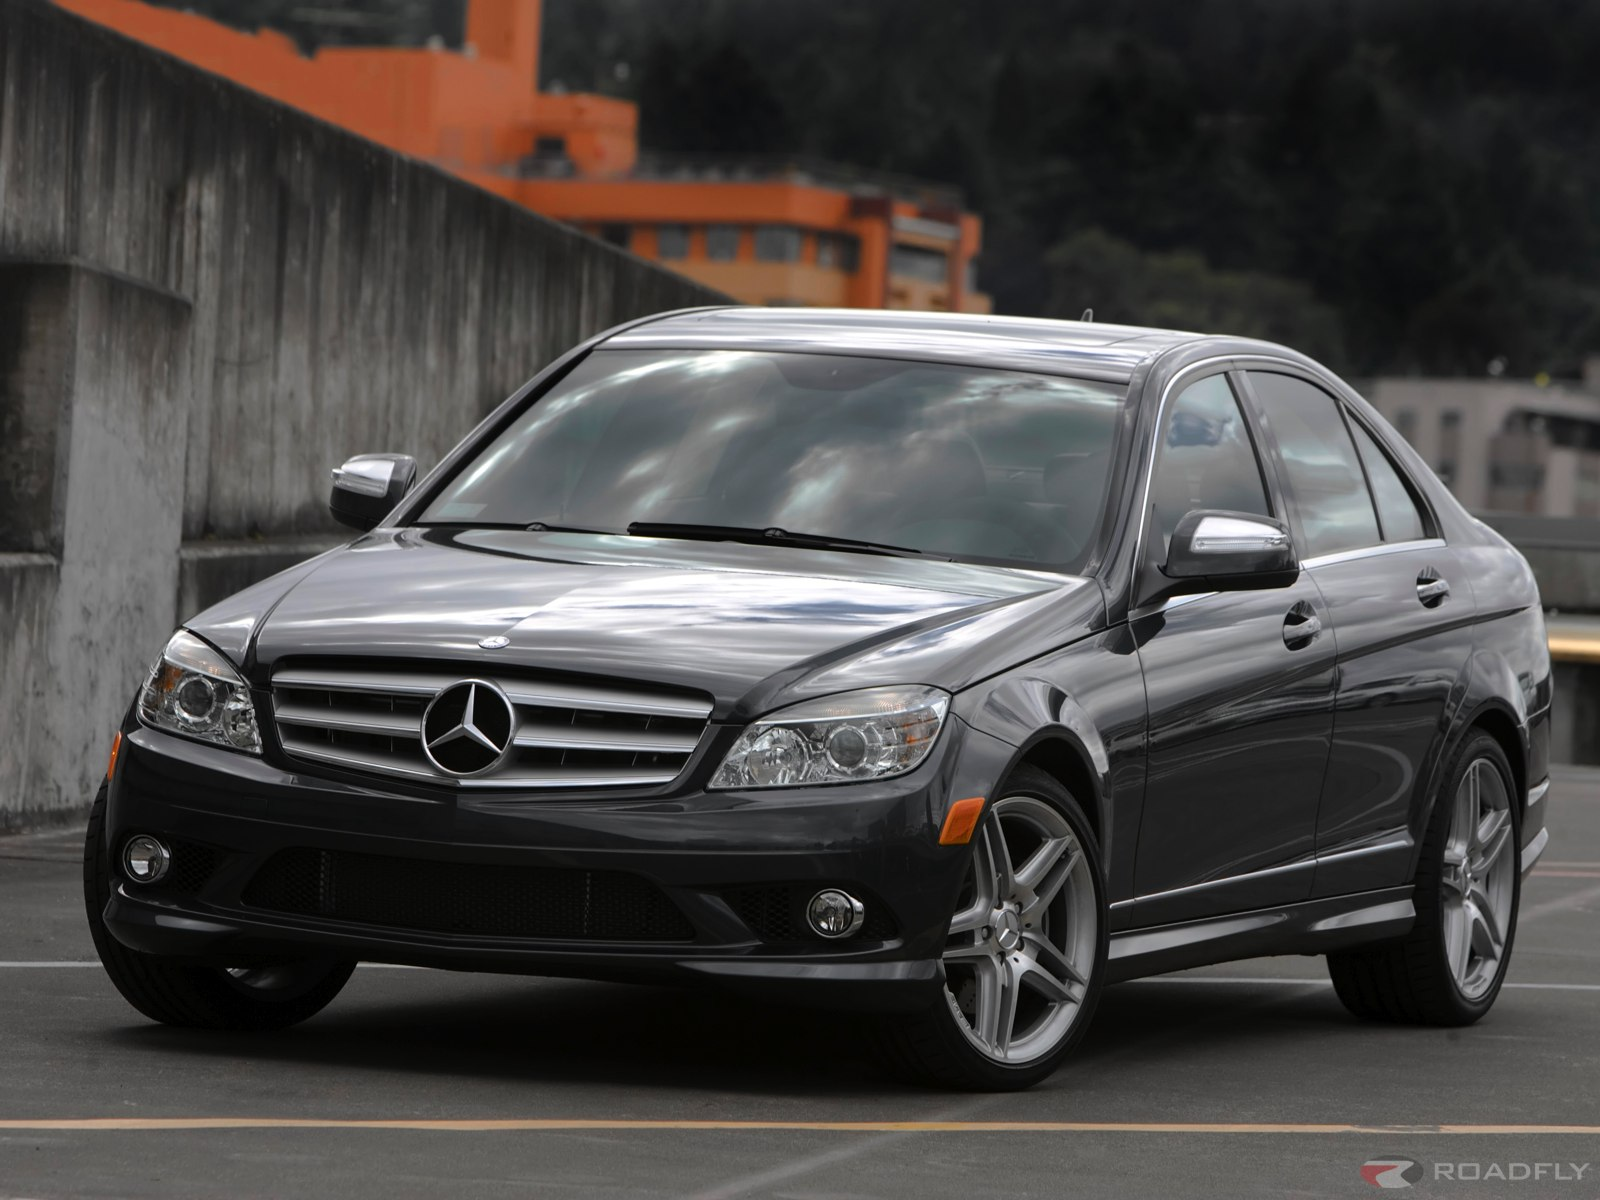 Mercedes benz c class overview for Mercedes benz c class pictures